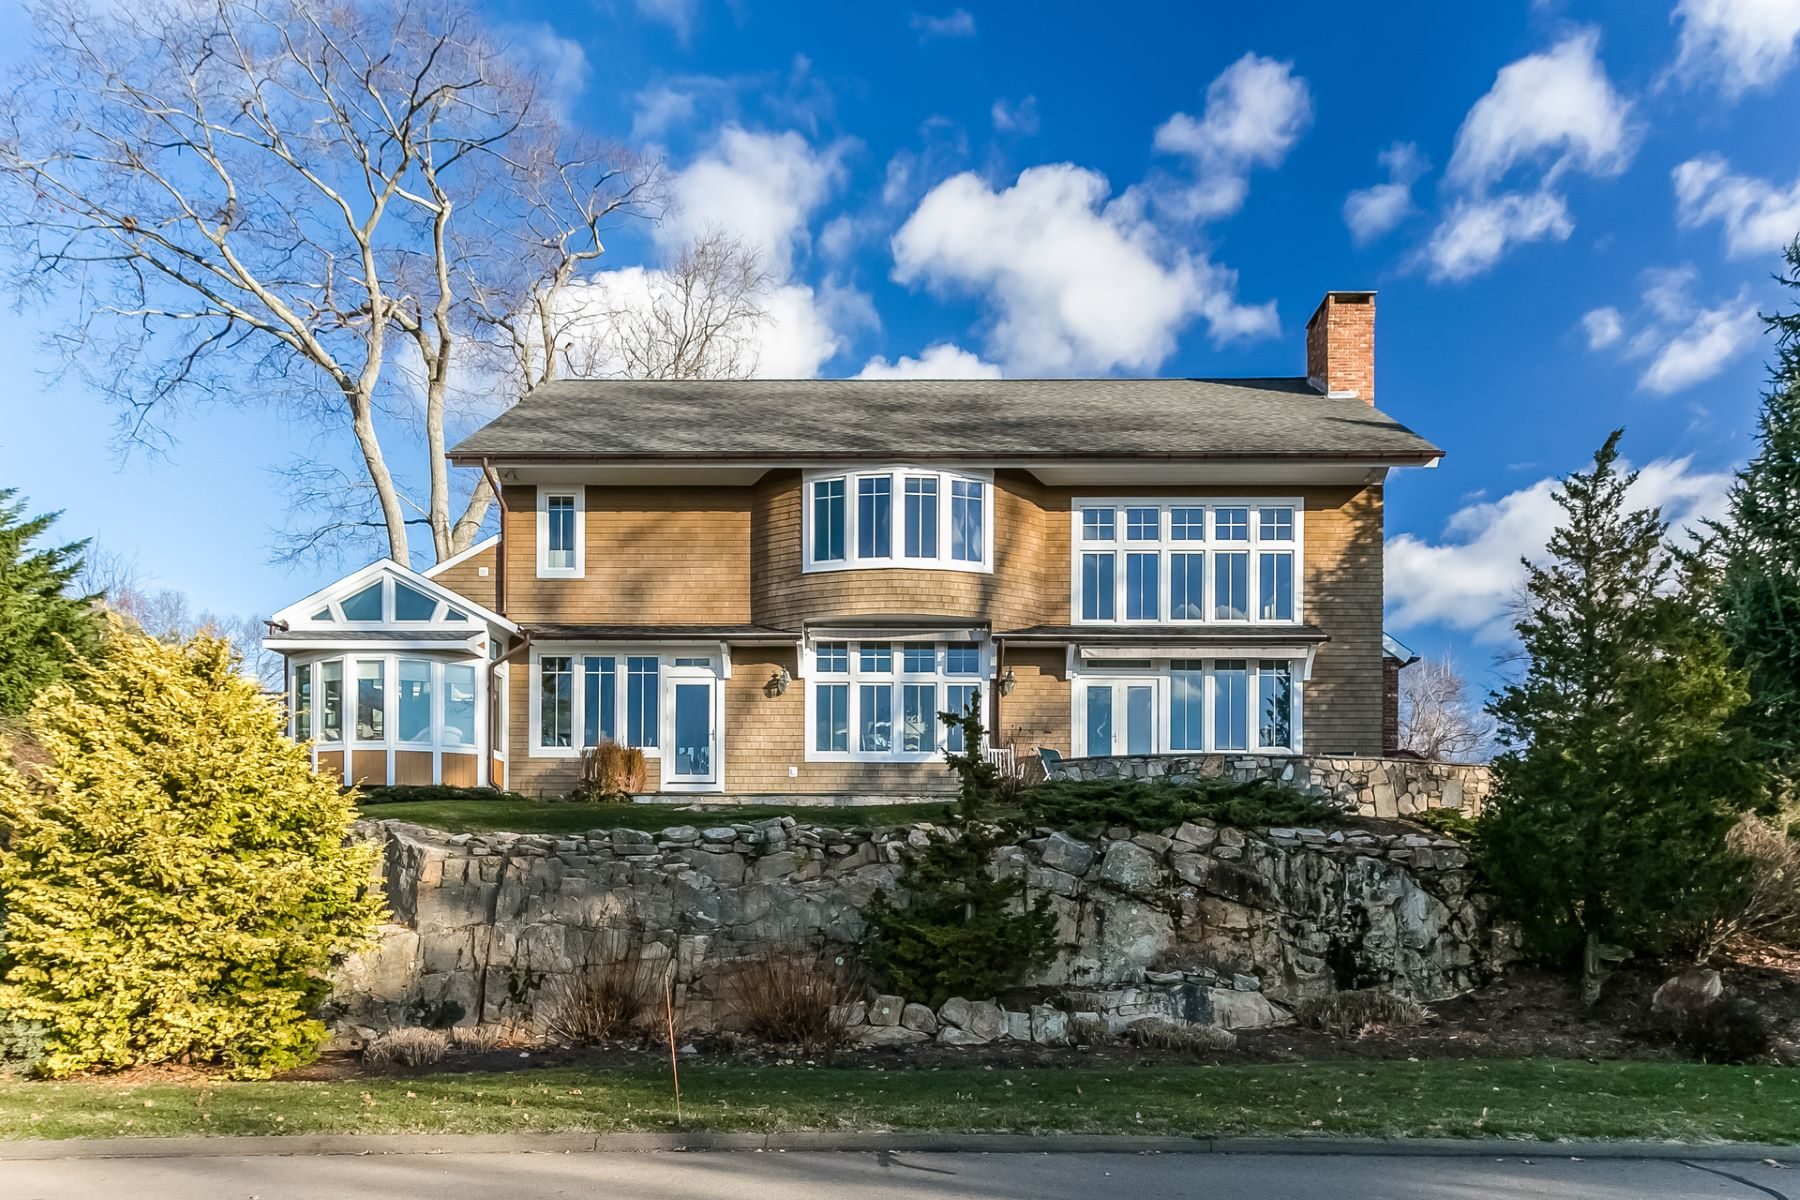 Casa Unifamiliar por un Venta en Spectacular Juniper Point 2 Gaylea Dr Branford, Connecticut, 06405 Estados Unidos